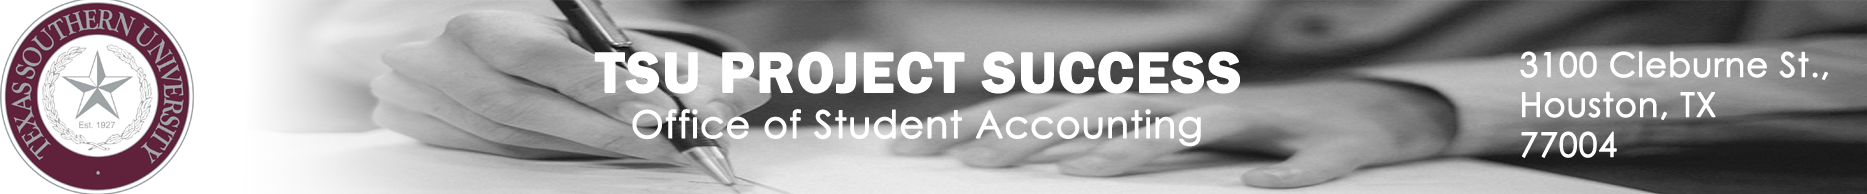 TSU Project Success Banner